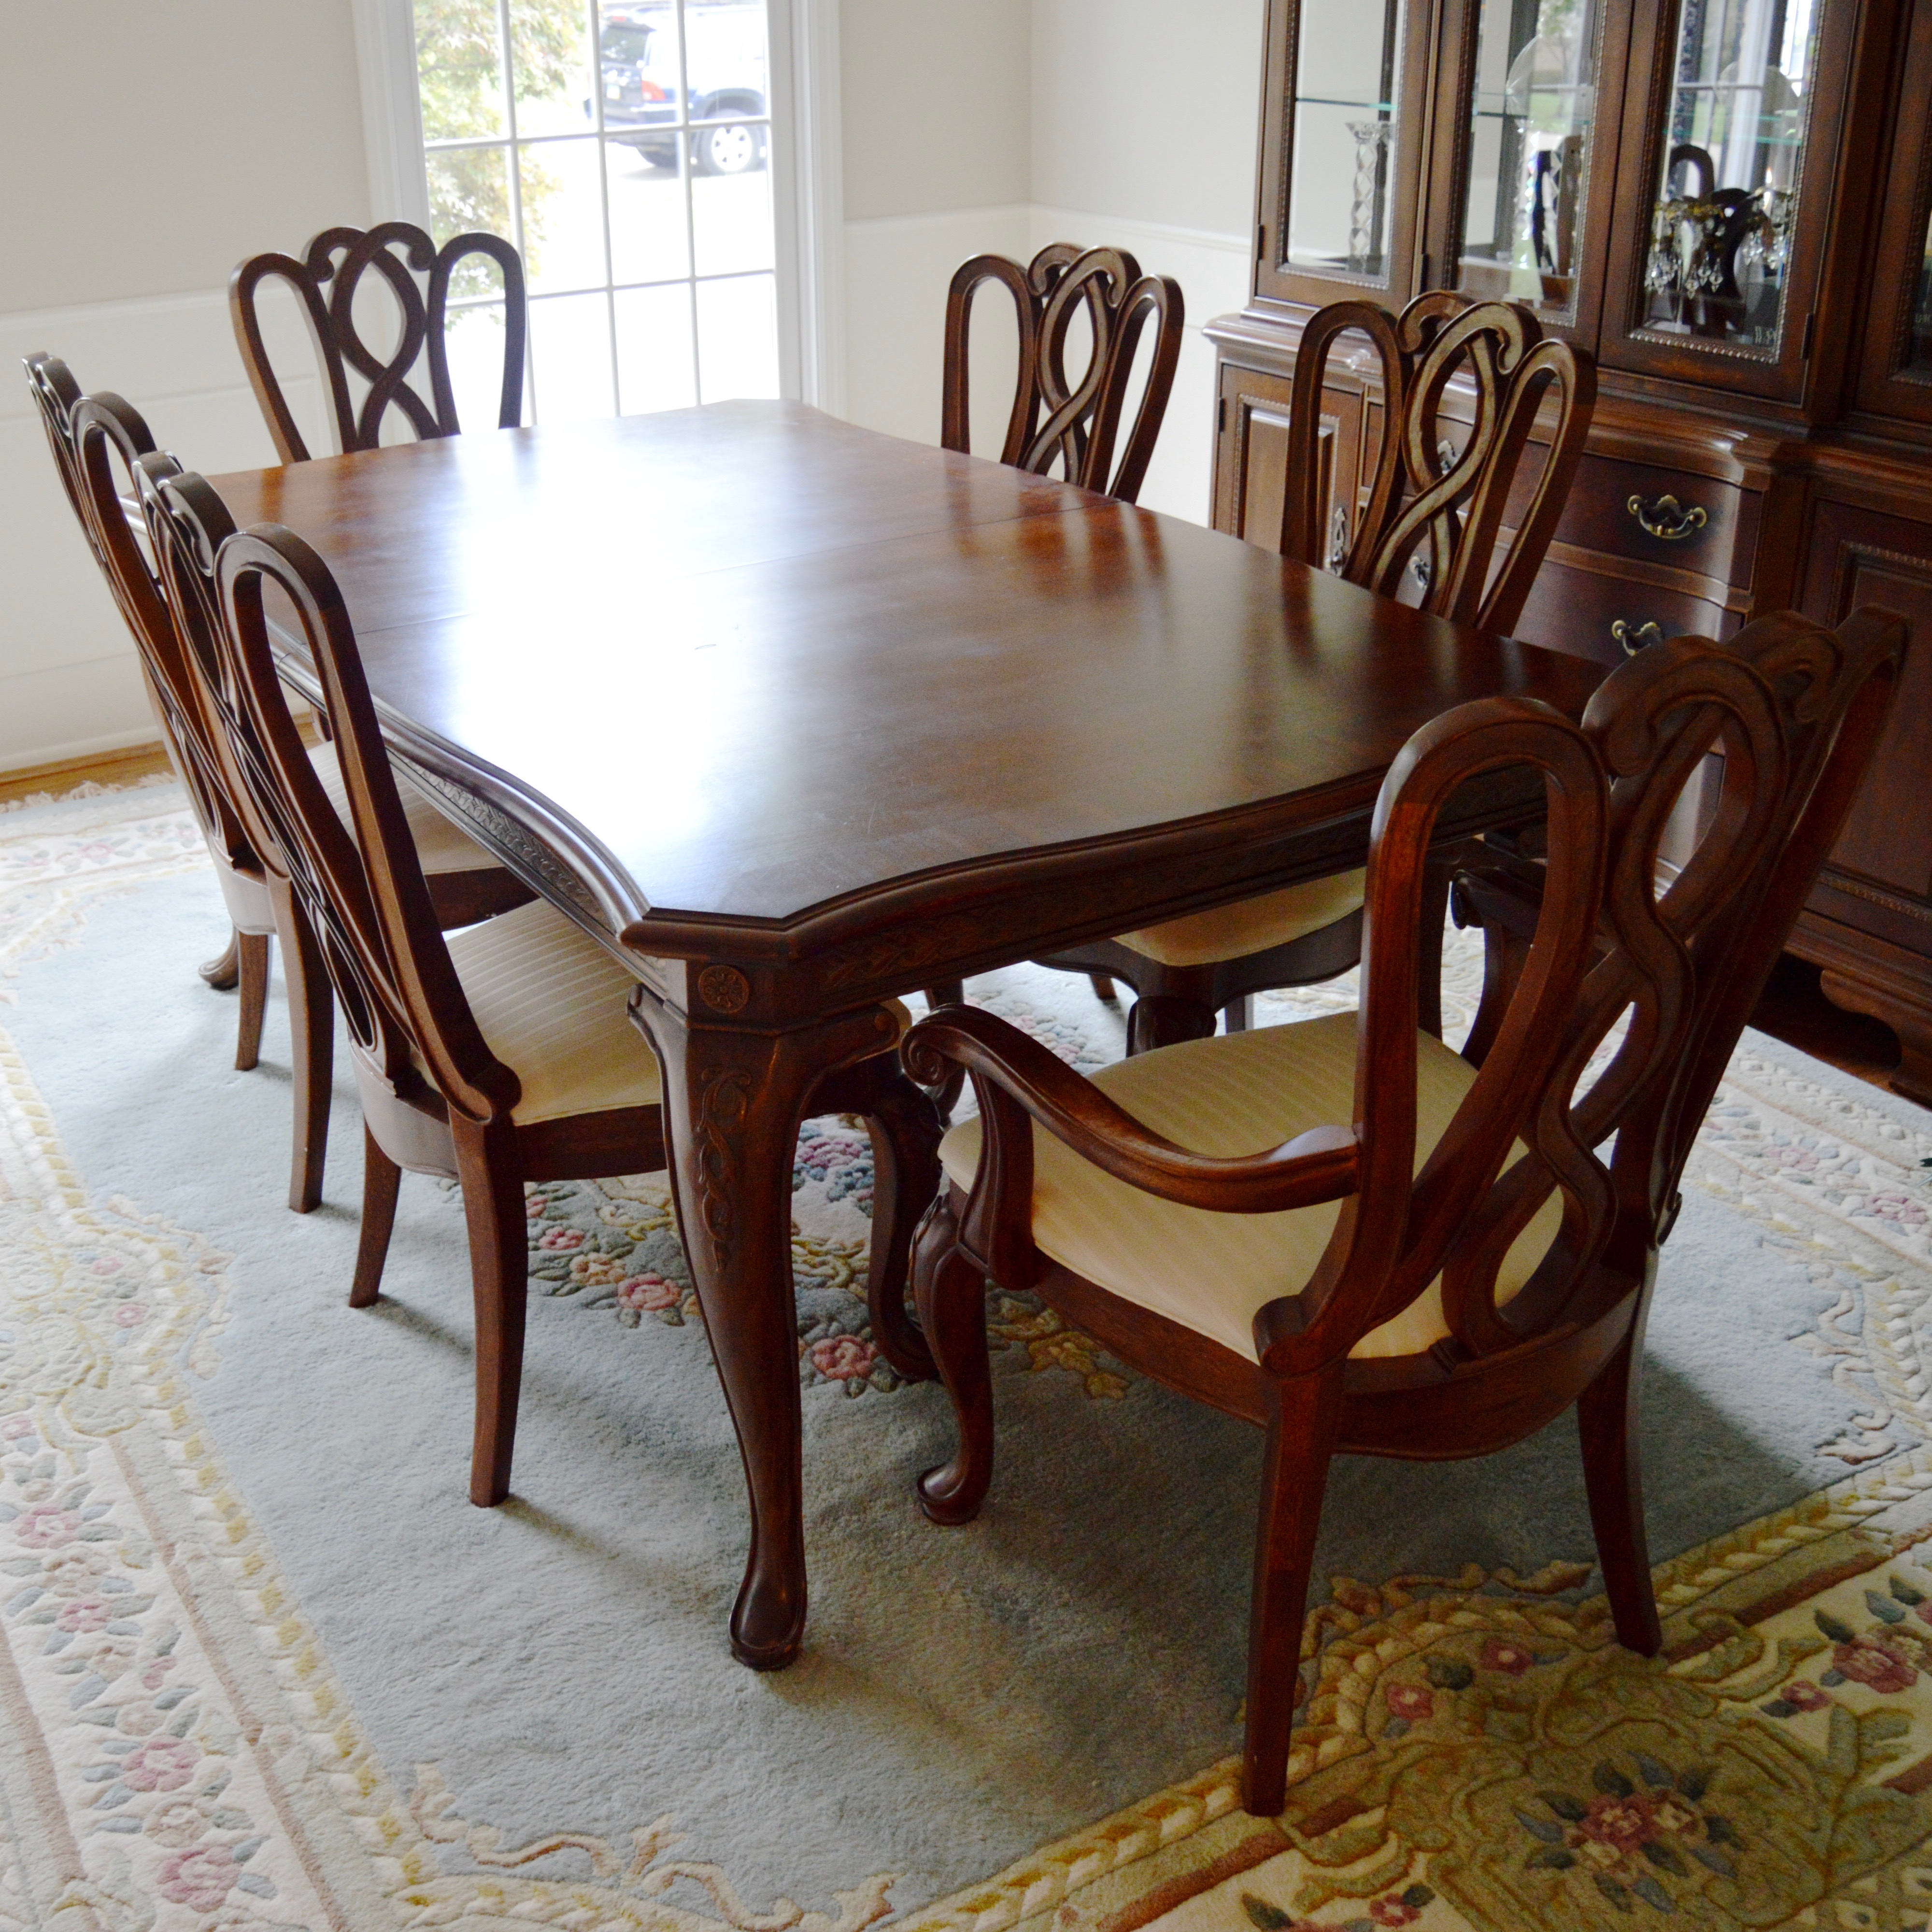 Formal Dining Room Table and Chairs by American Drew : EBTH